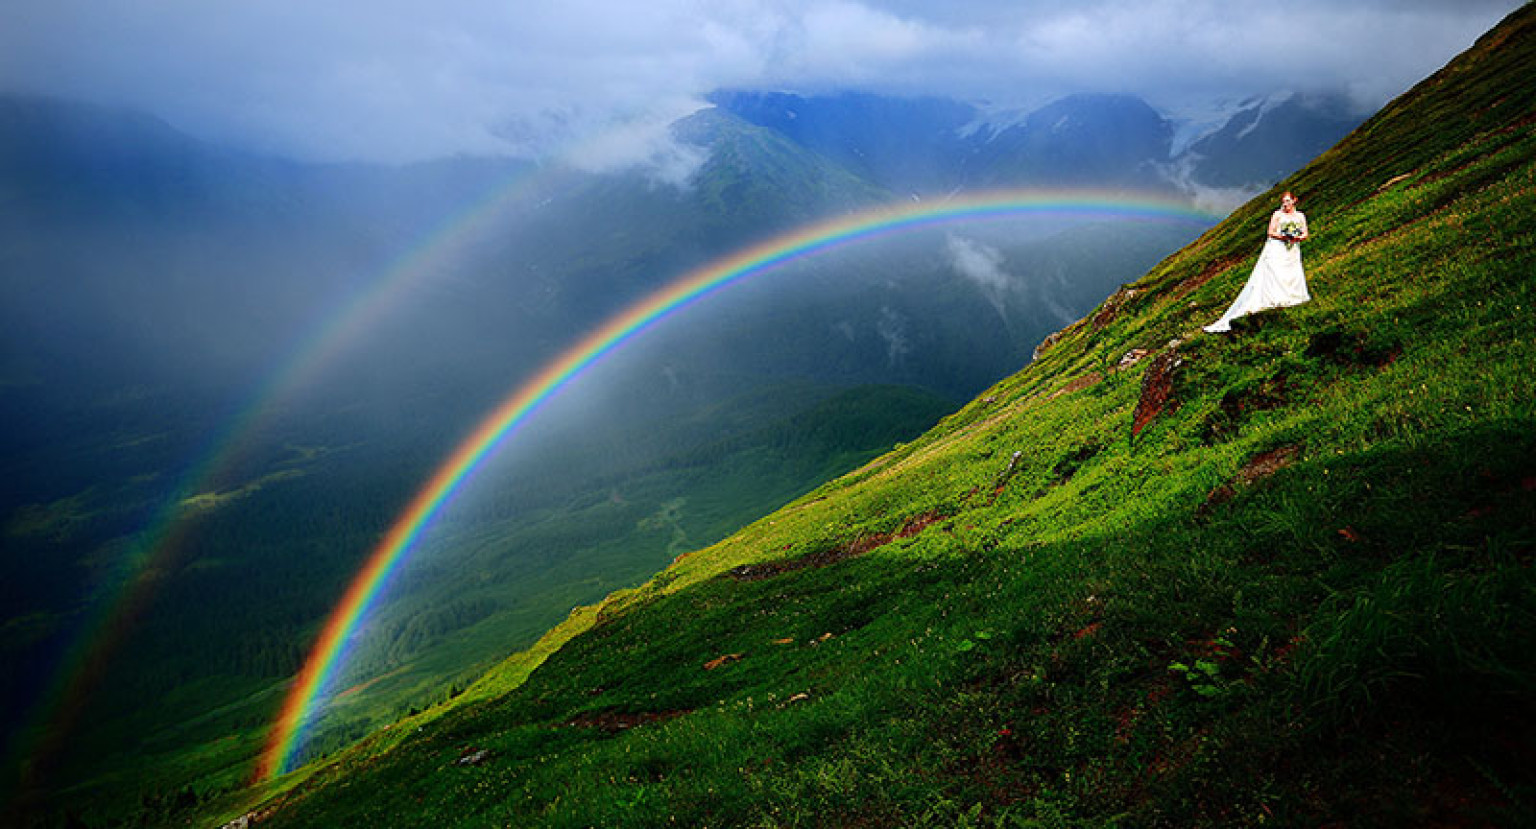 Double Rainbow Wallpaper by Peeewax on DeviantArt  |Double Rainbow Wallpaper